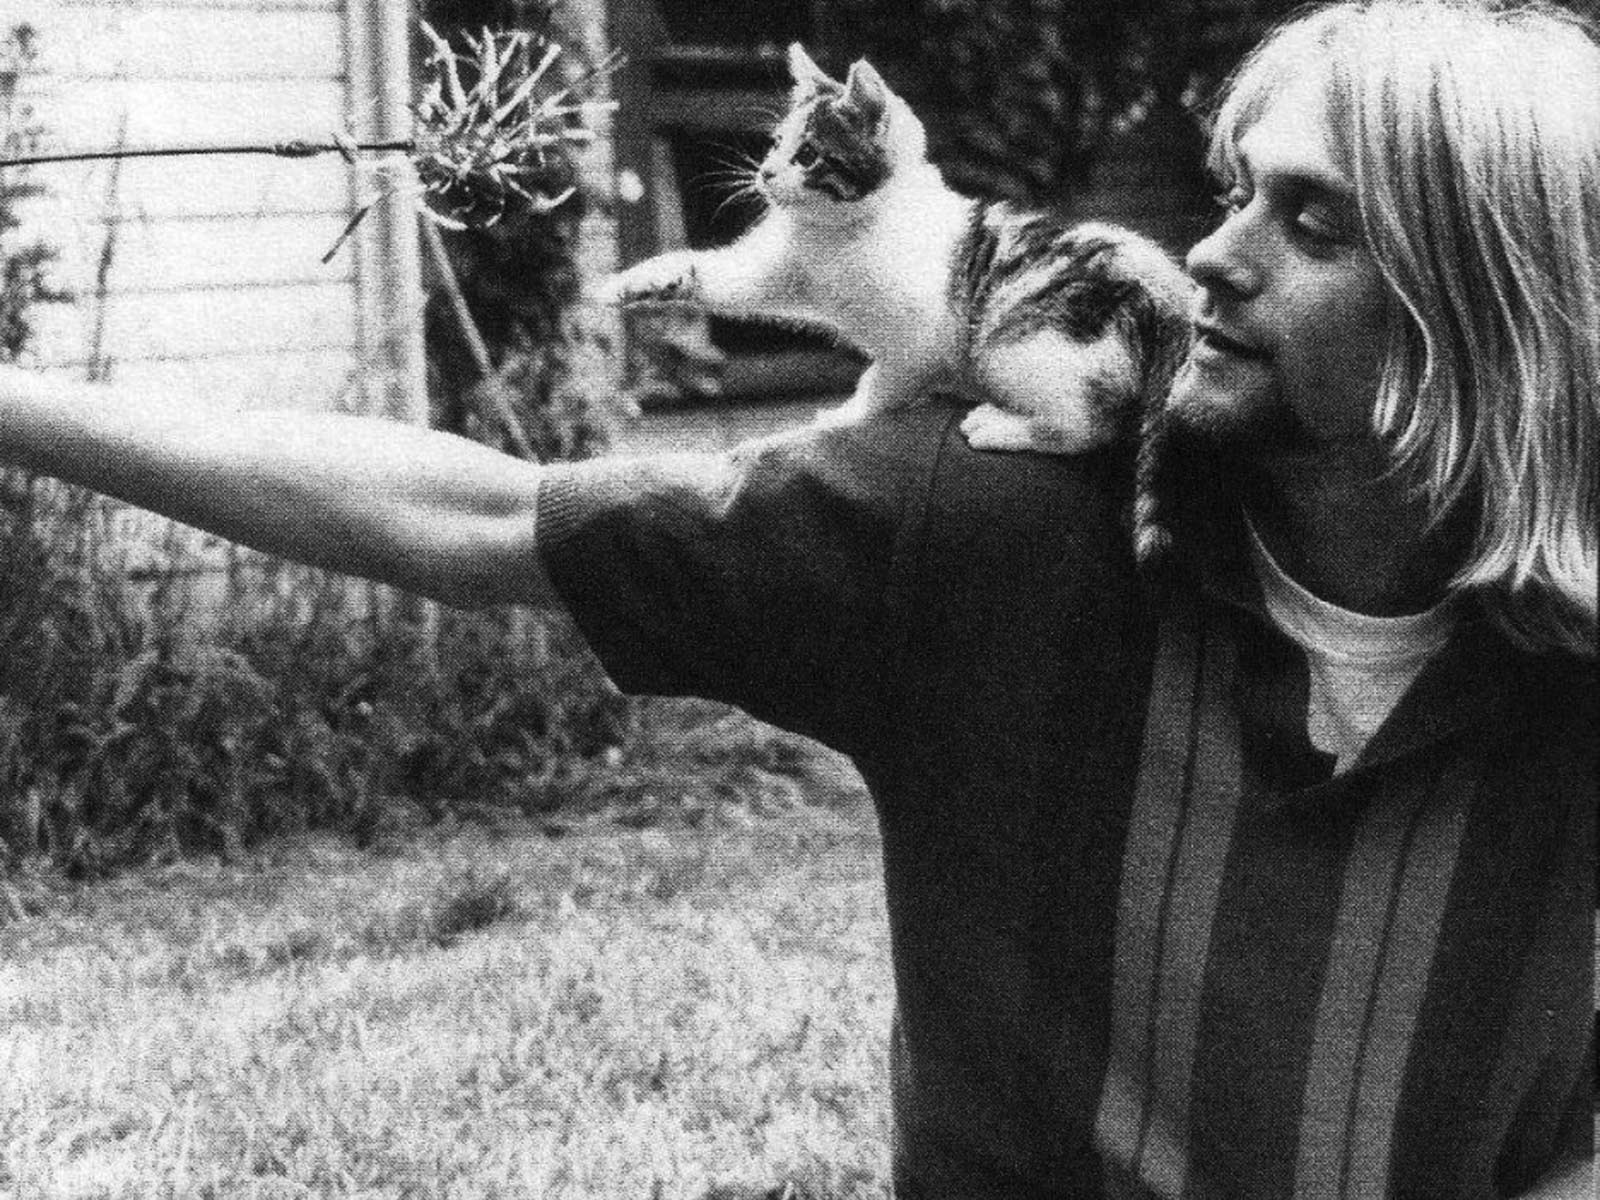 Wallpaper kitten Kurt Cobain Nirvana Kurt Cobain with kitten 1600x1200